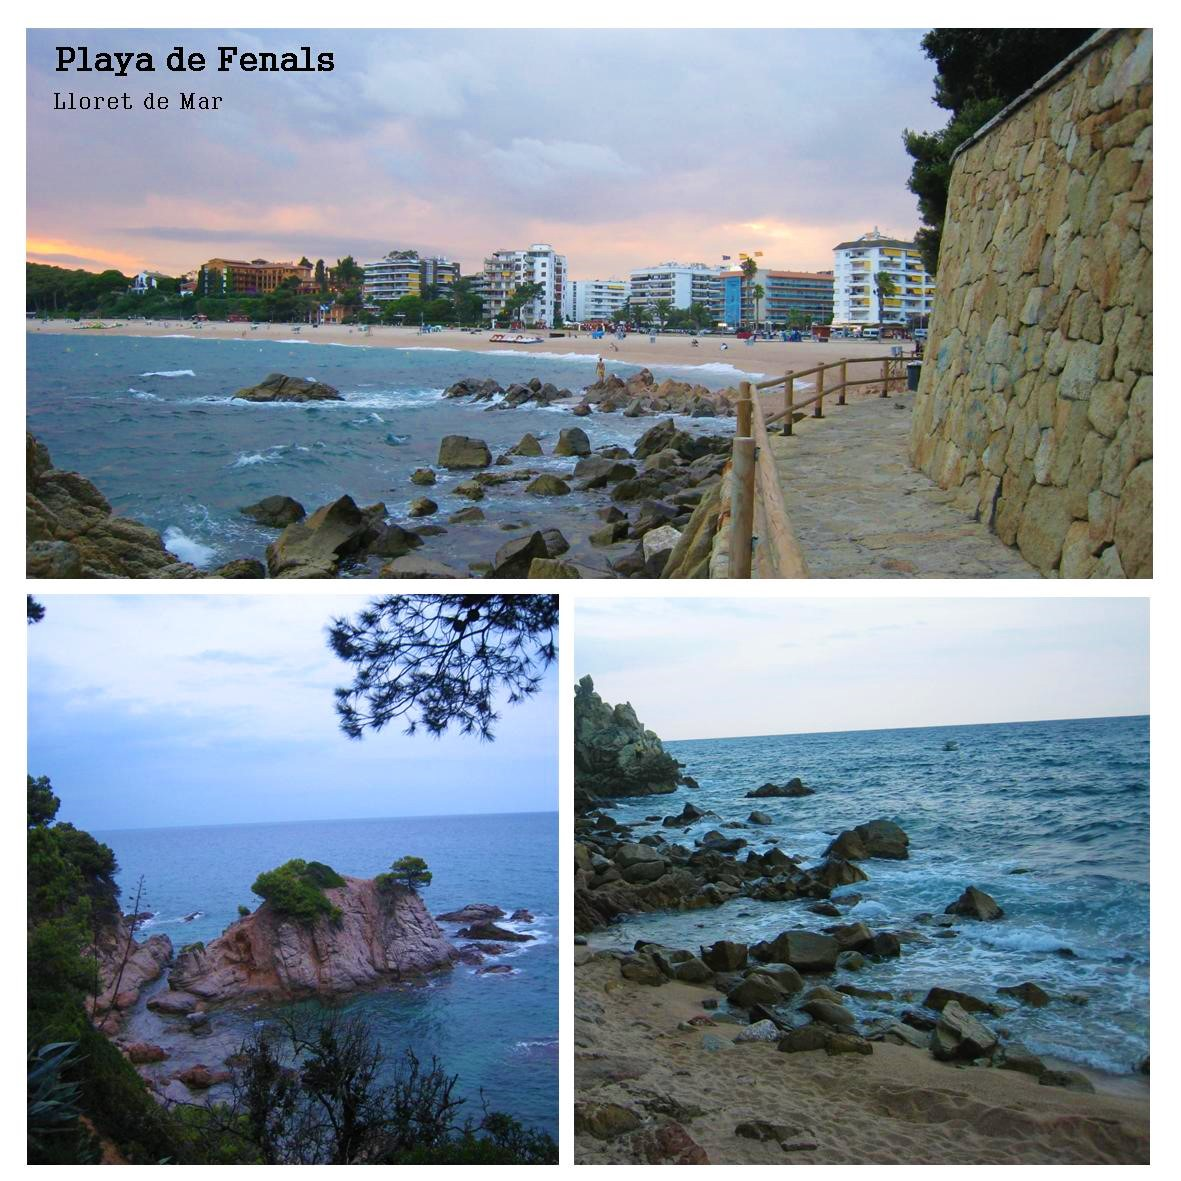 Playa de Fenals i Lloret de mar